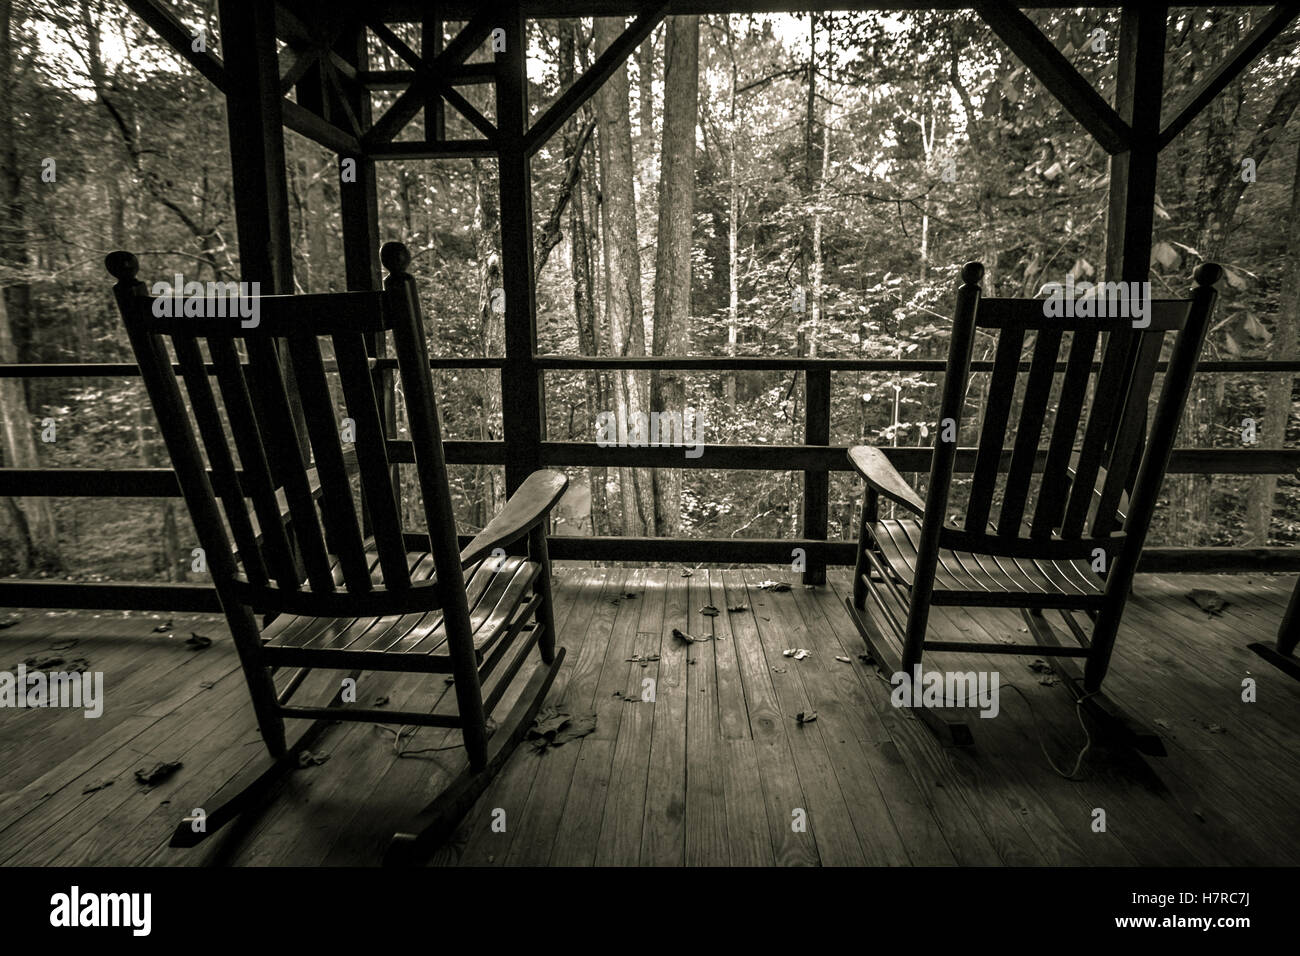 Empty Rocking Chairs On Front Porch. Two empty wooden rocking chairs on a wooden front porch overlooking the forest. & Empty Rocking Chairs On Front Porch. Two empty wooden rocking chairs ...